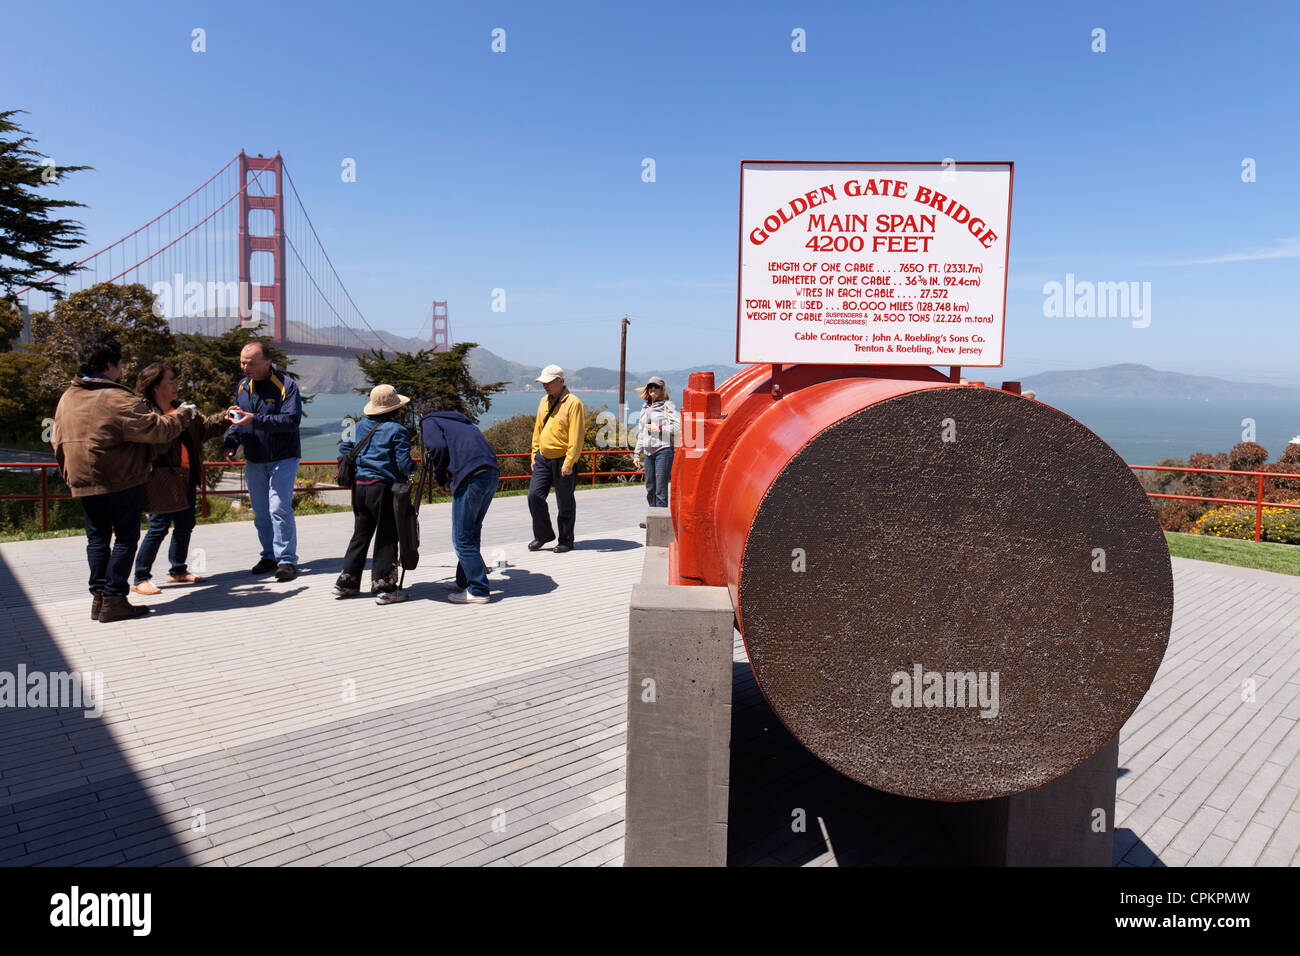 Cross-section view of the main suspension cable used on the Golden Gate Bridge - Stock Image